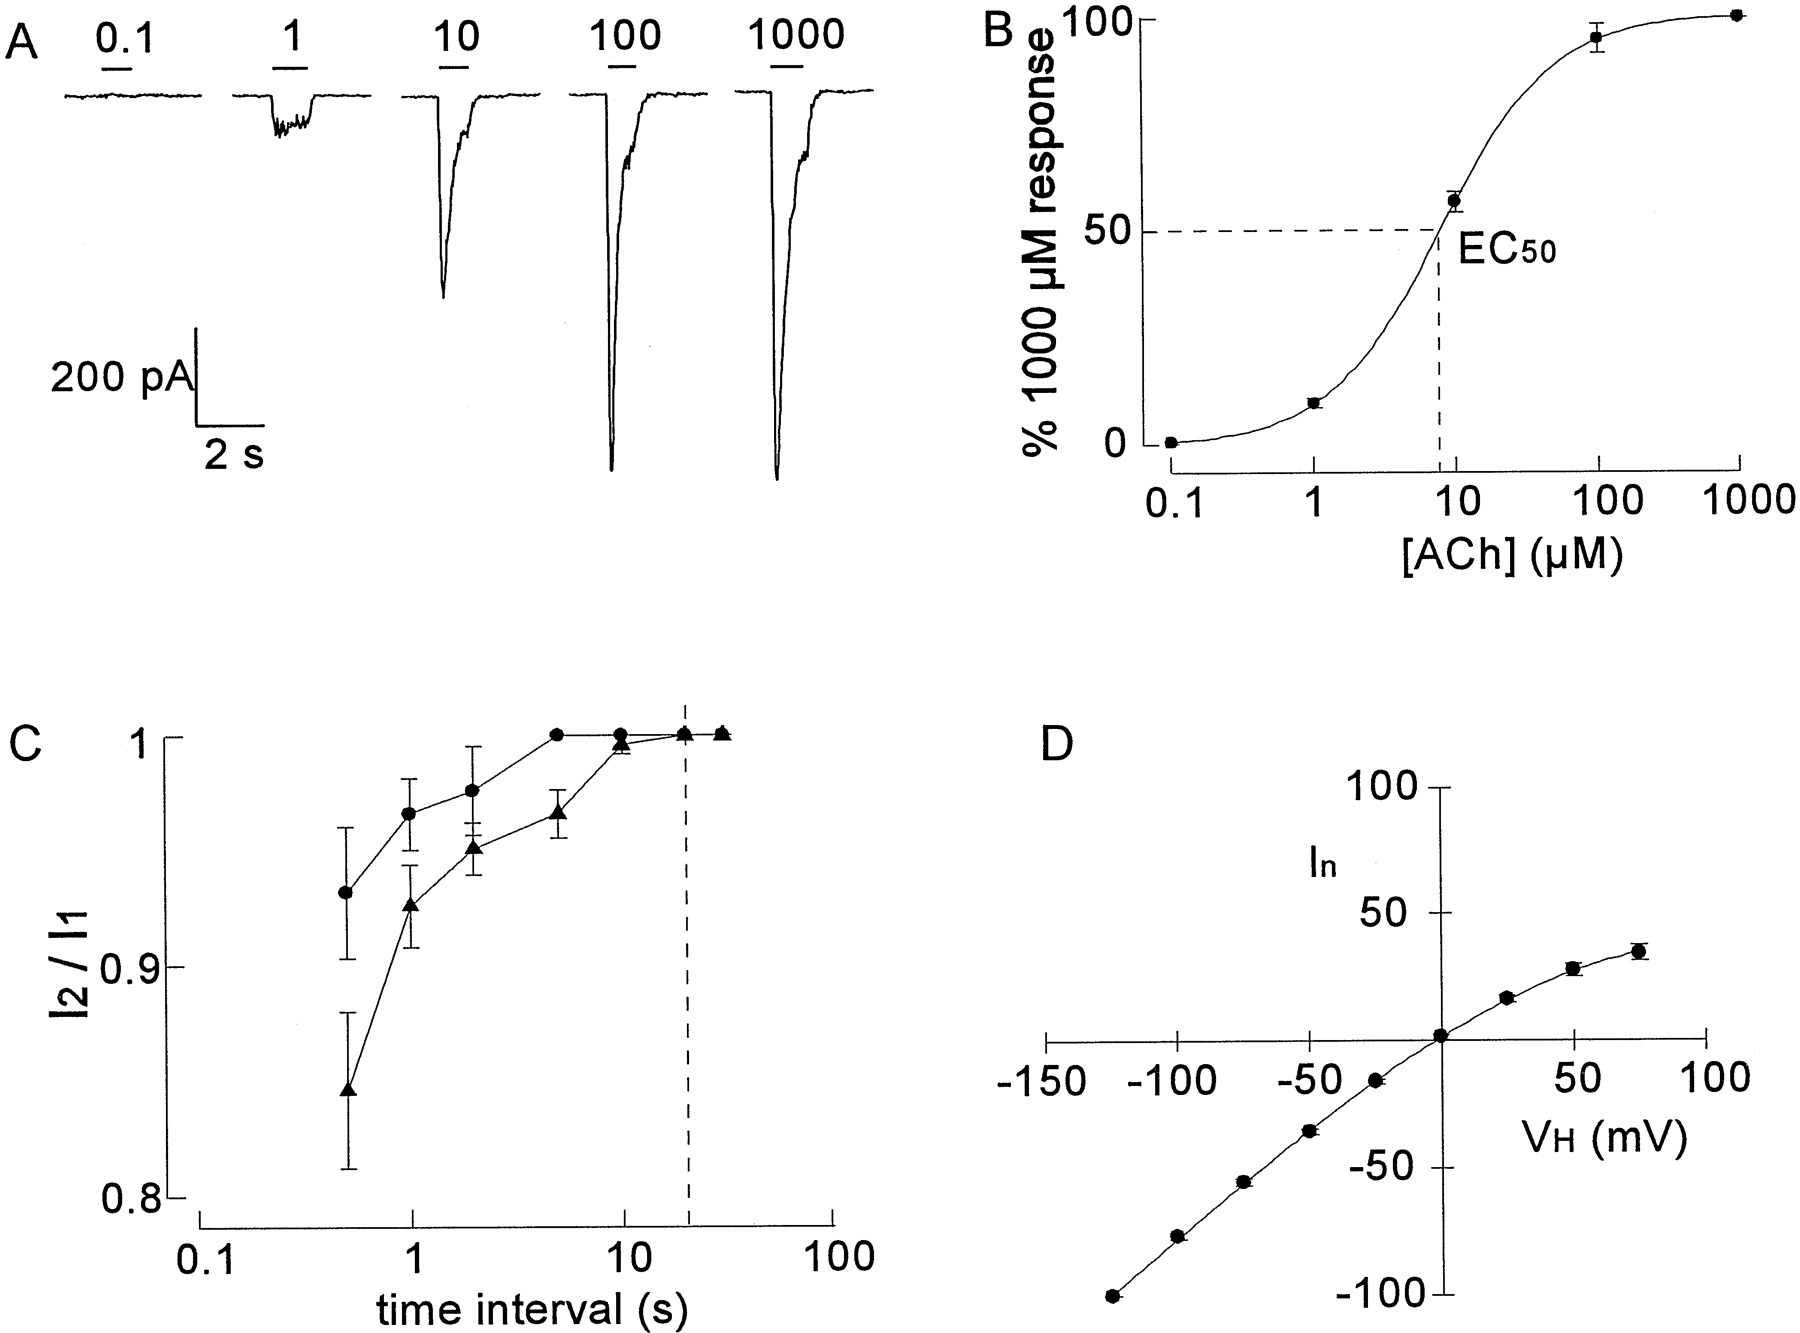 potentiation and inhibition of nicotinic acetylcholine receptors, Muscles